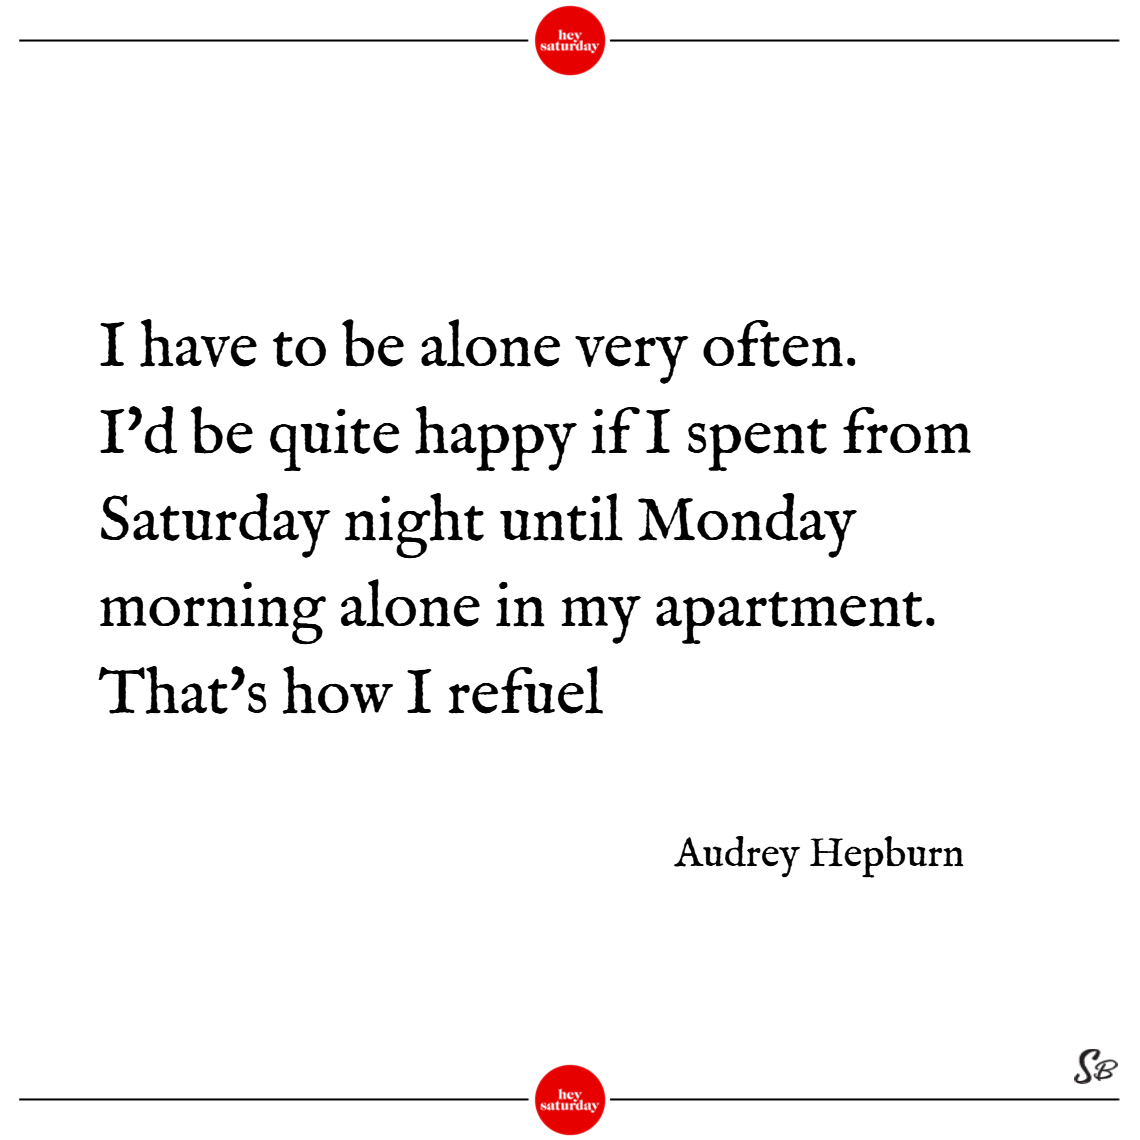 I have to be alone very often. i'd be quite happy if i spent from saturday night until monday morning alone in my apartment. that's how i refuel. – audrey hepburn